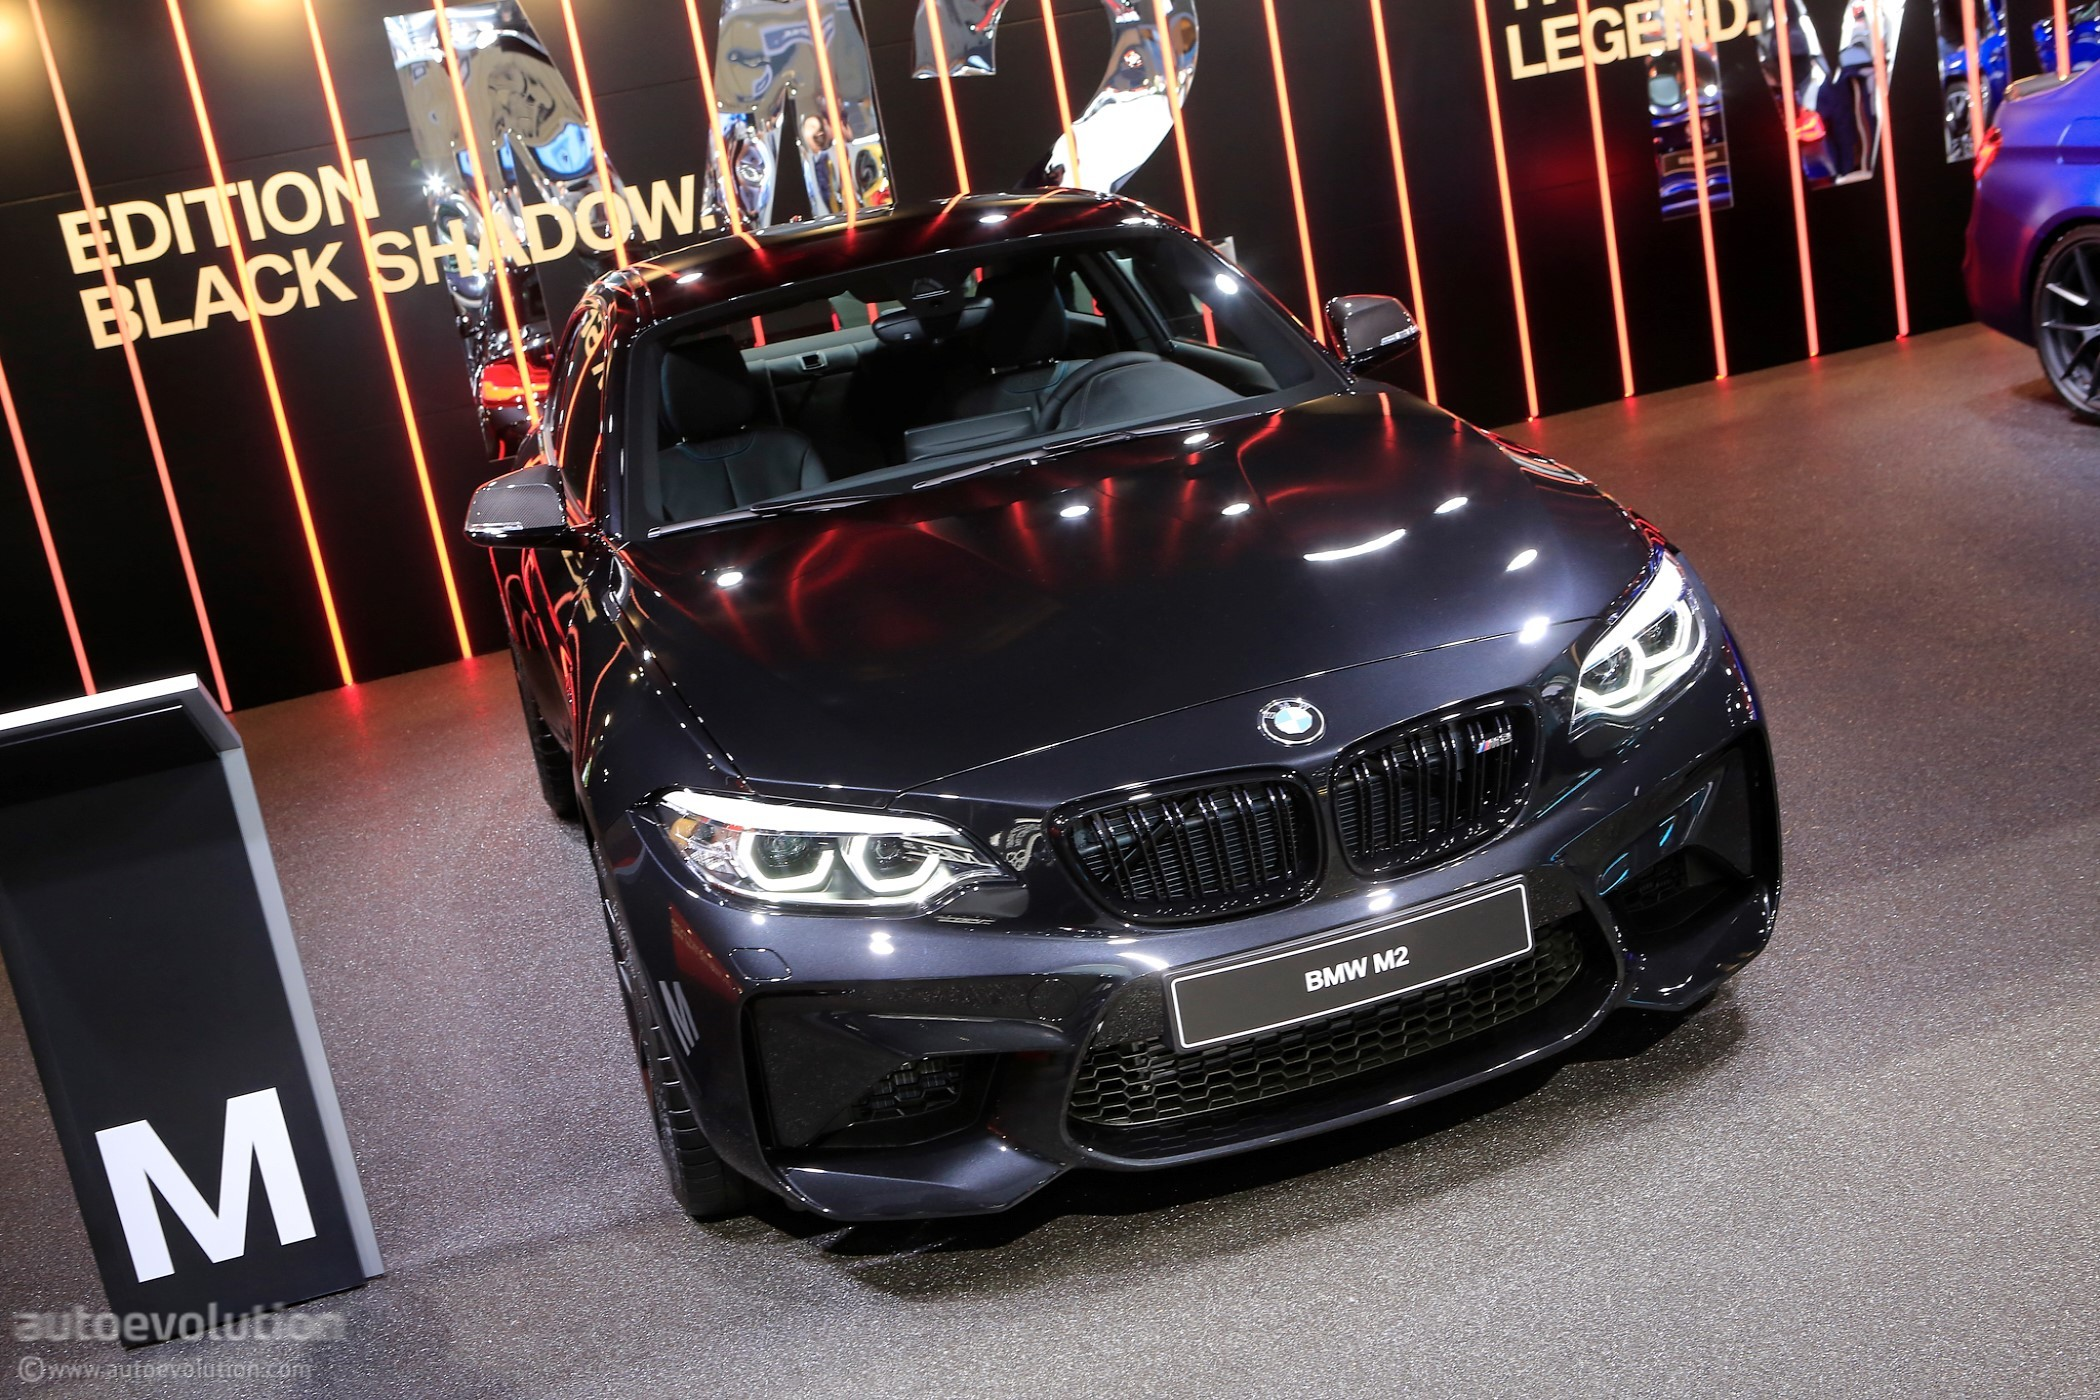 Bmw Stand At Geneva Brings Together M2 Edition Black Shadow With M3